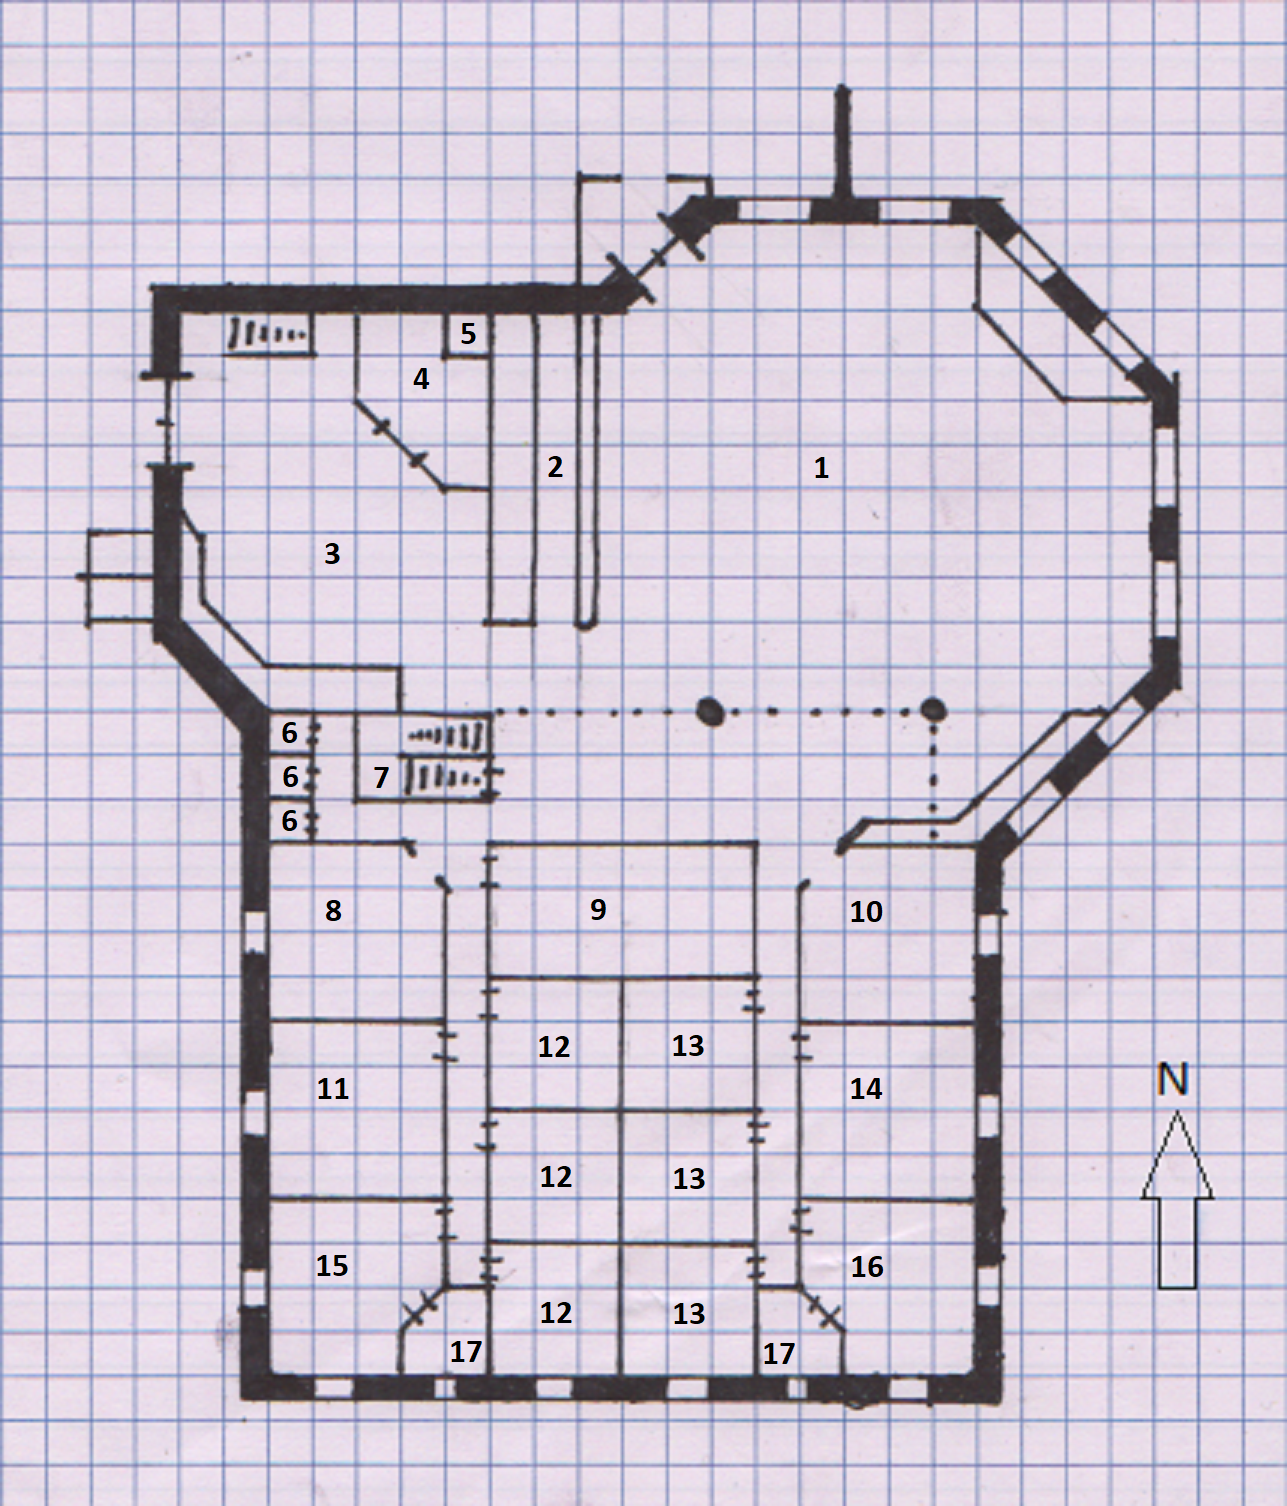 The_Blue_Dragolisk_Inn_Main_Floor.png